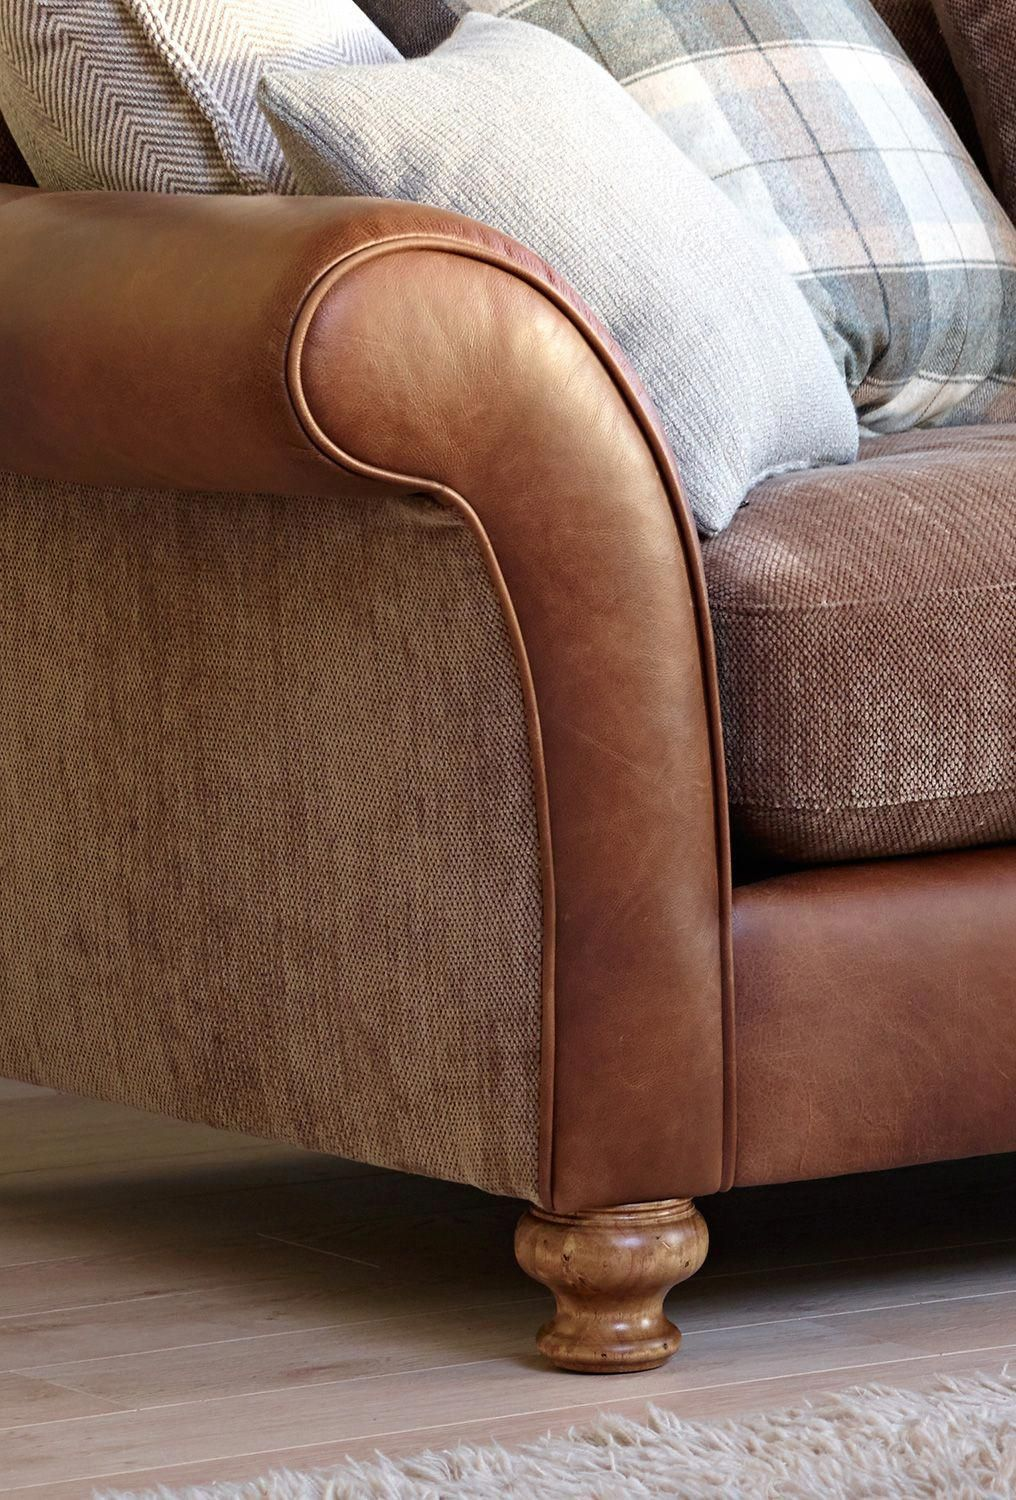 Character Leather Sofa With Cosy Woven Seats Accent With Our Eltham Check Or Plaid Cushions You Chose Best Leather Sofa Sofa Reupholstery Cushions On Sofa